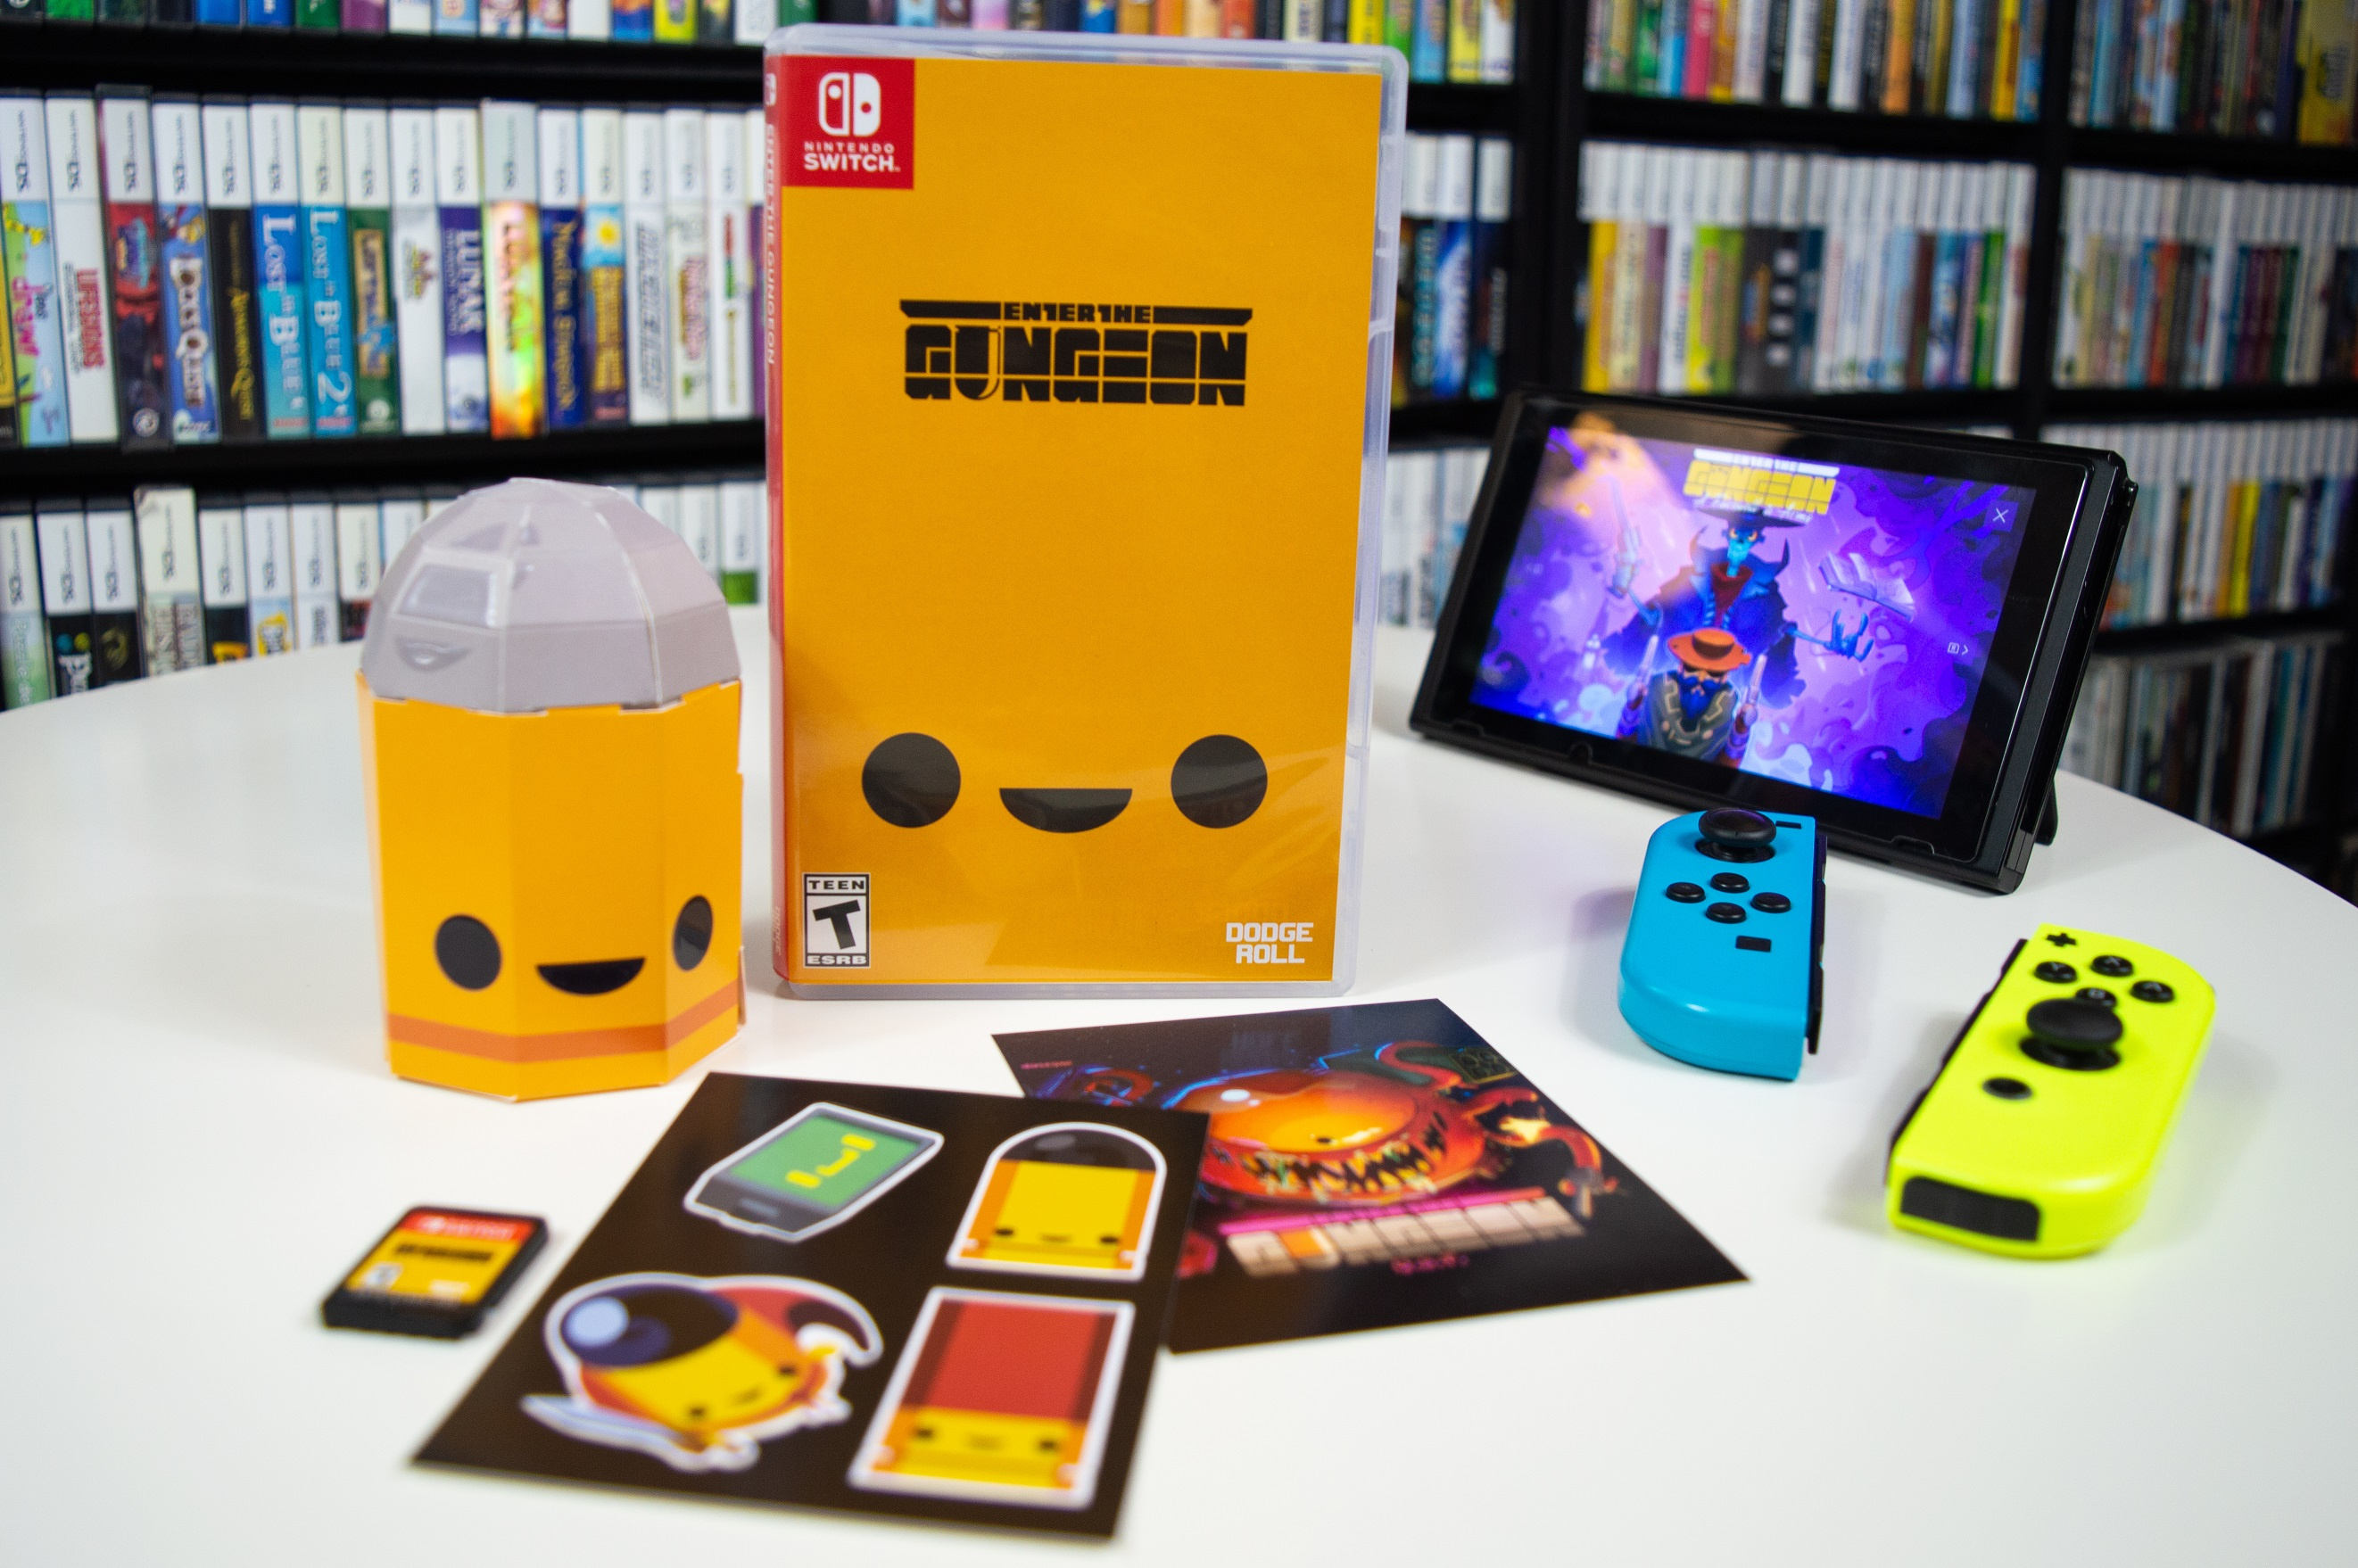 Hands On: Enter The Gungeon's Physical Edition Is Sure To Brighten